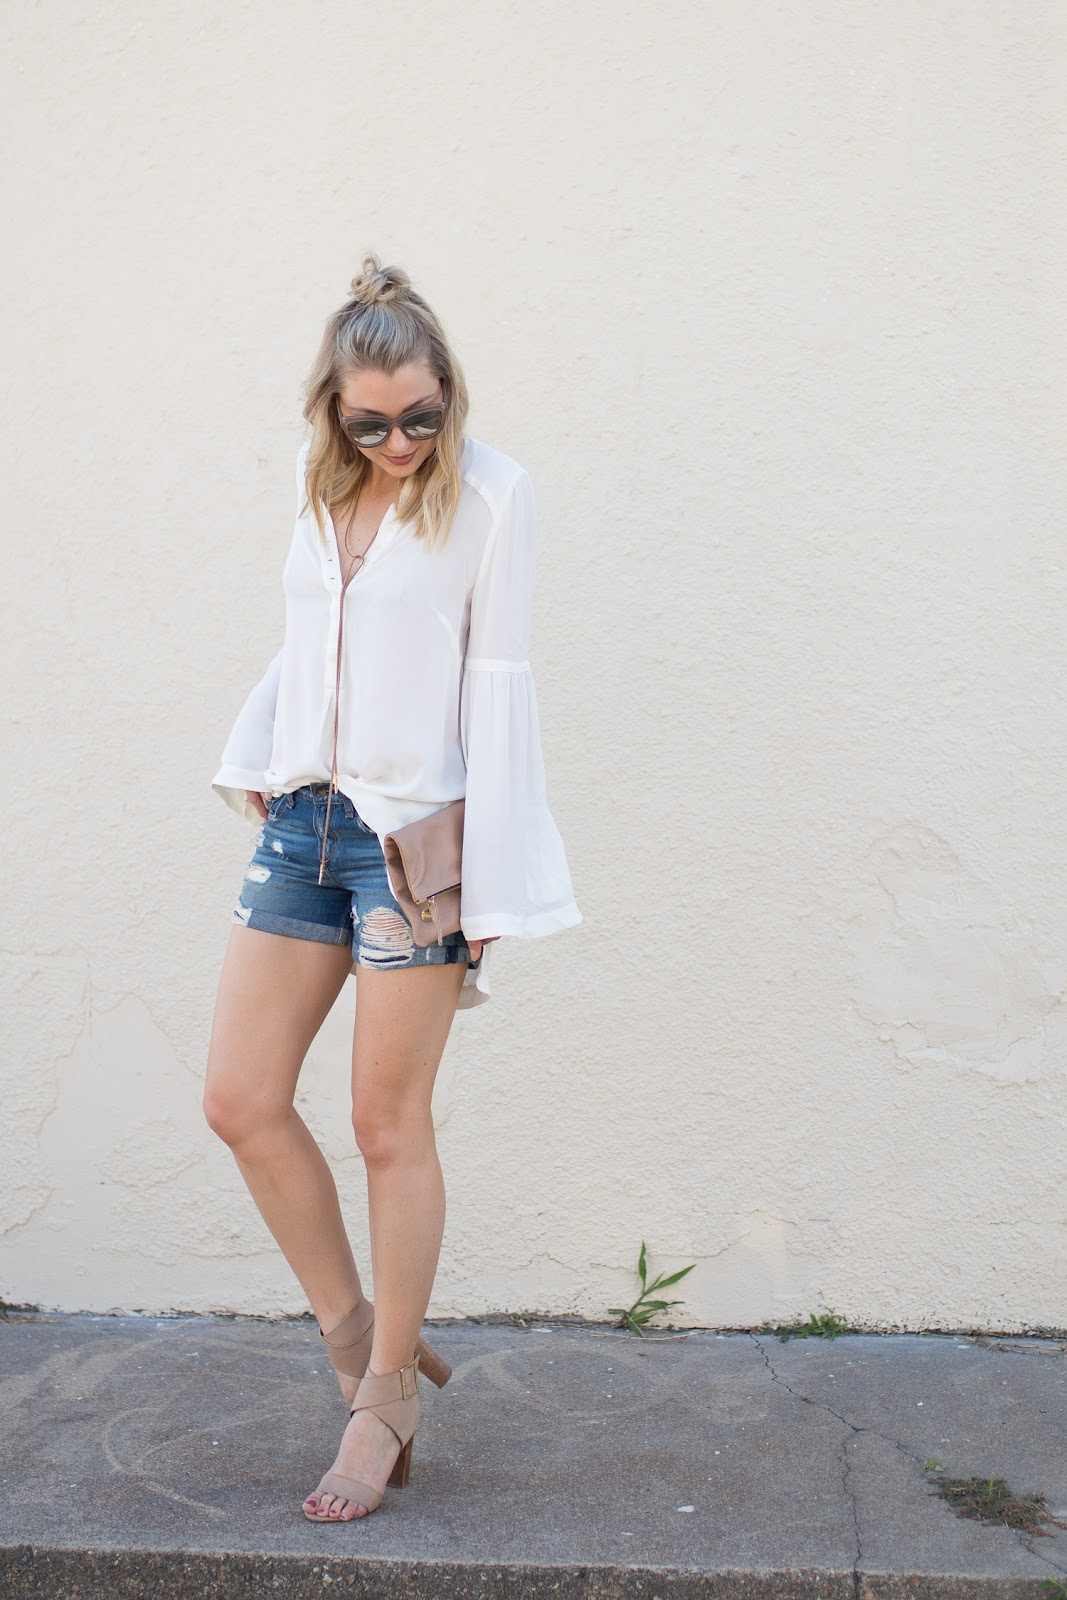 Distressed jean shorts with a white top